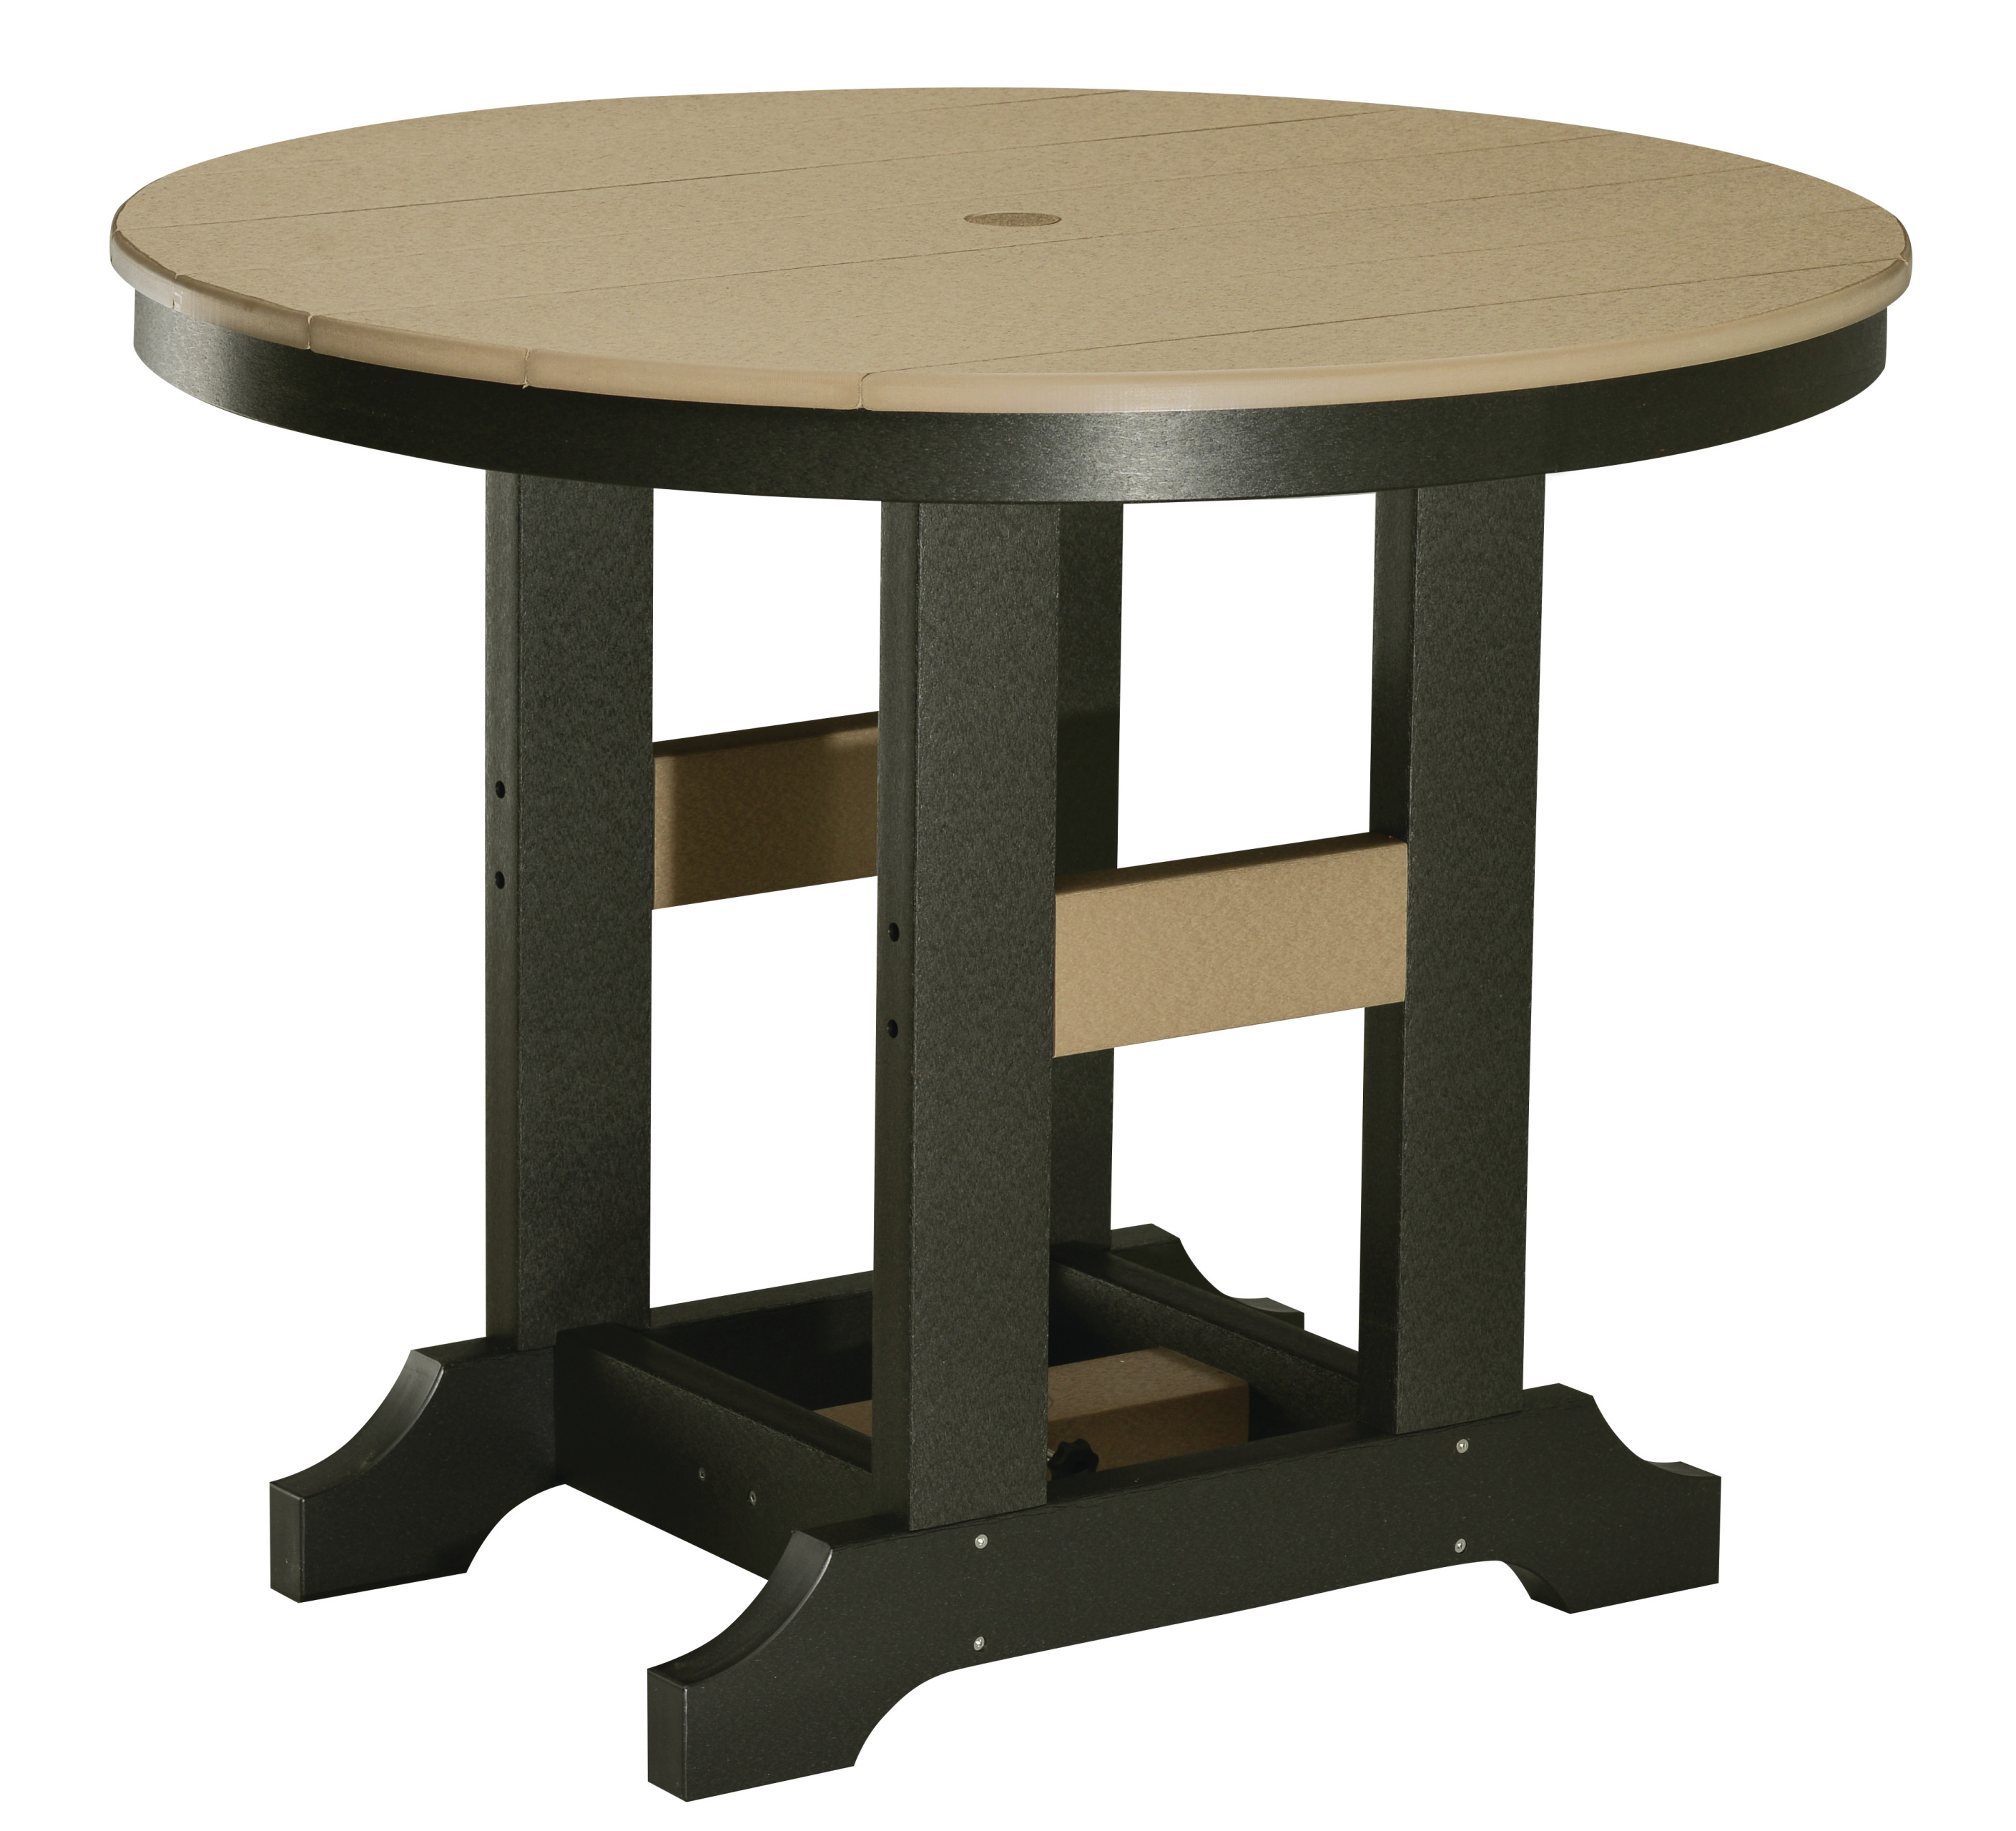 38 round dining tables regular dining height. Black Bedroom Furniture Sets. Home Design Ideas